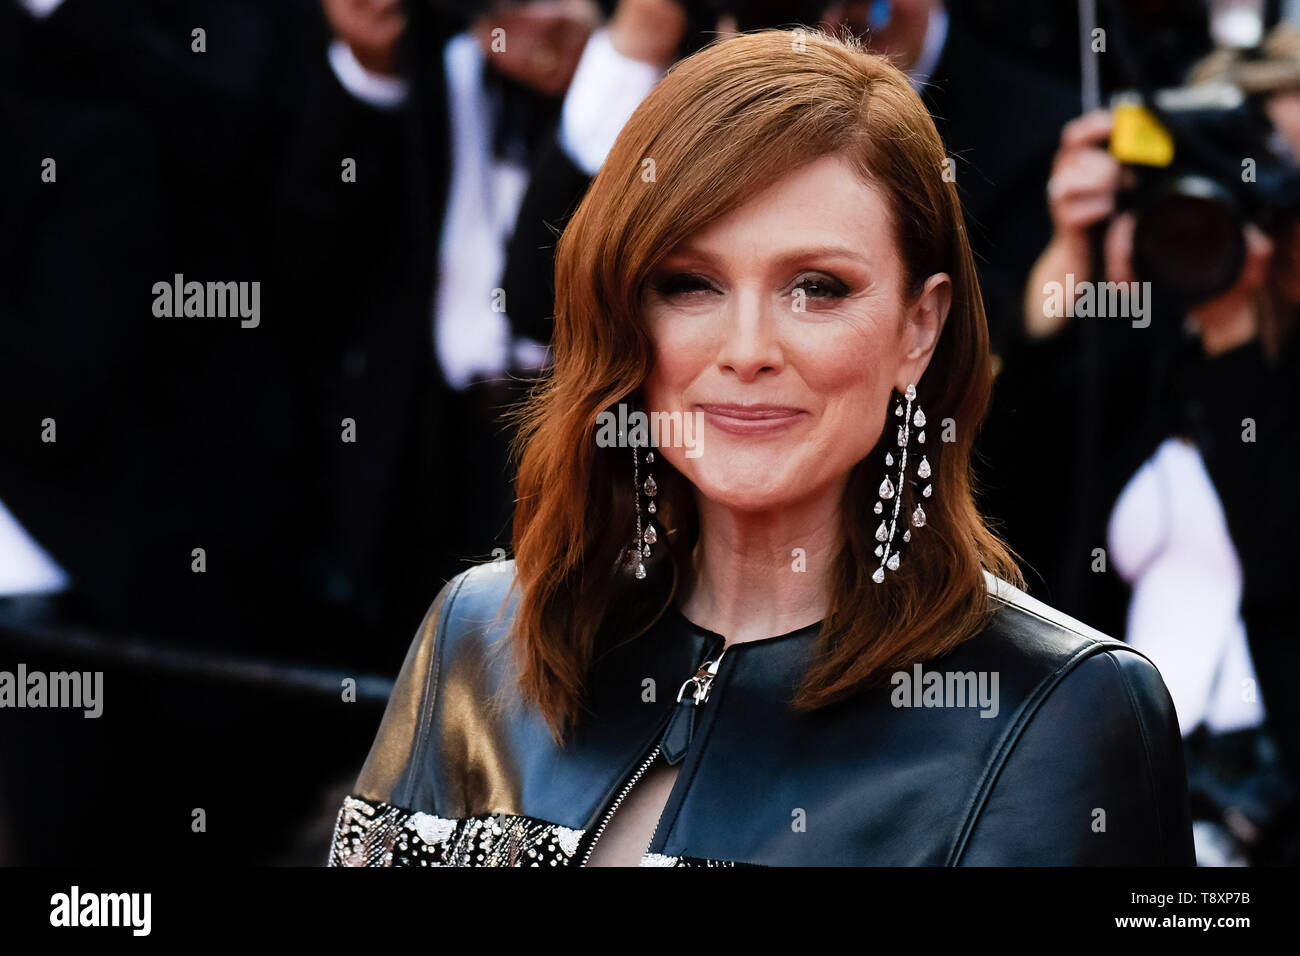 Cannes France 15th May 2019 Julianne Moore Poses On The